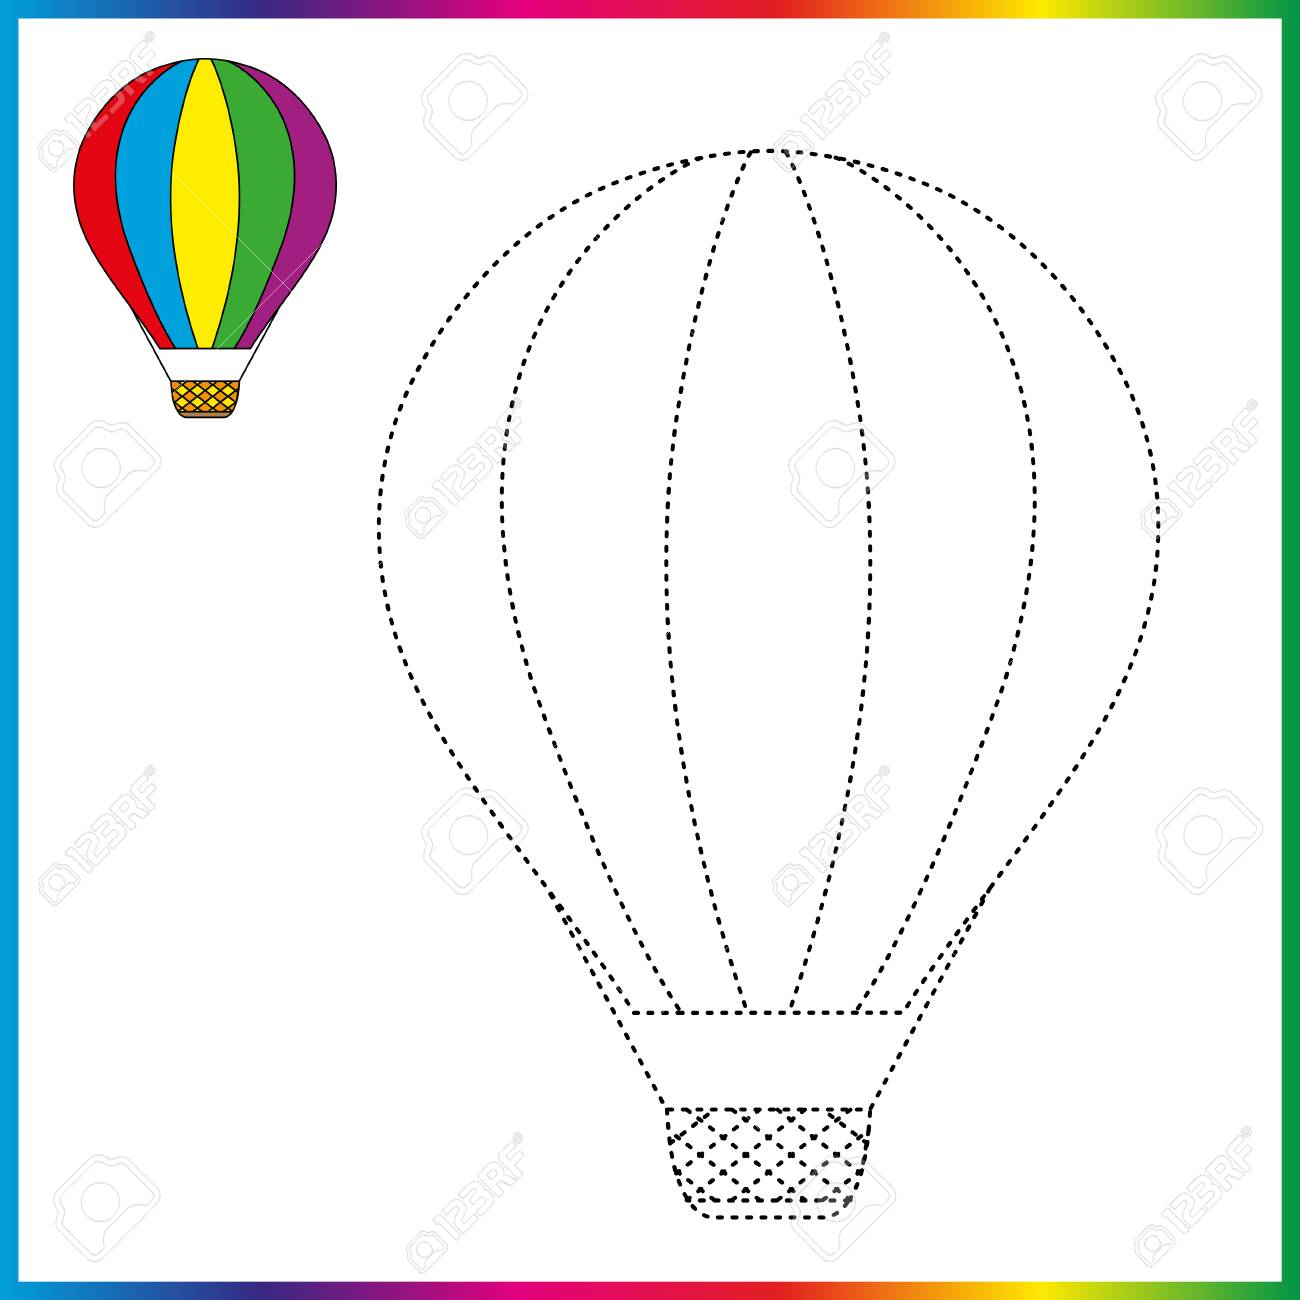 Hot air balloon connect the dots and coloring page worksheet game for kids